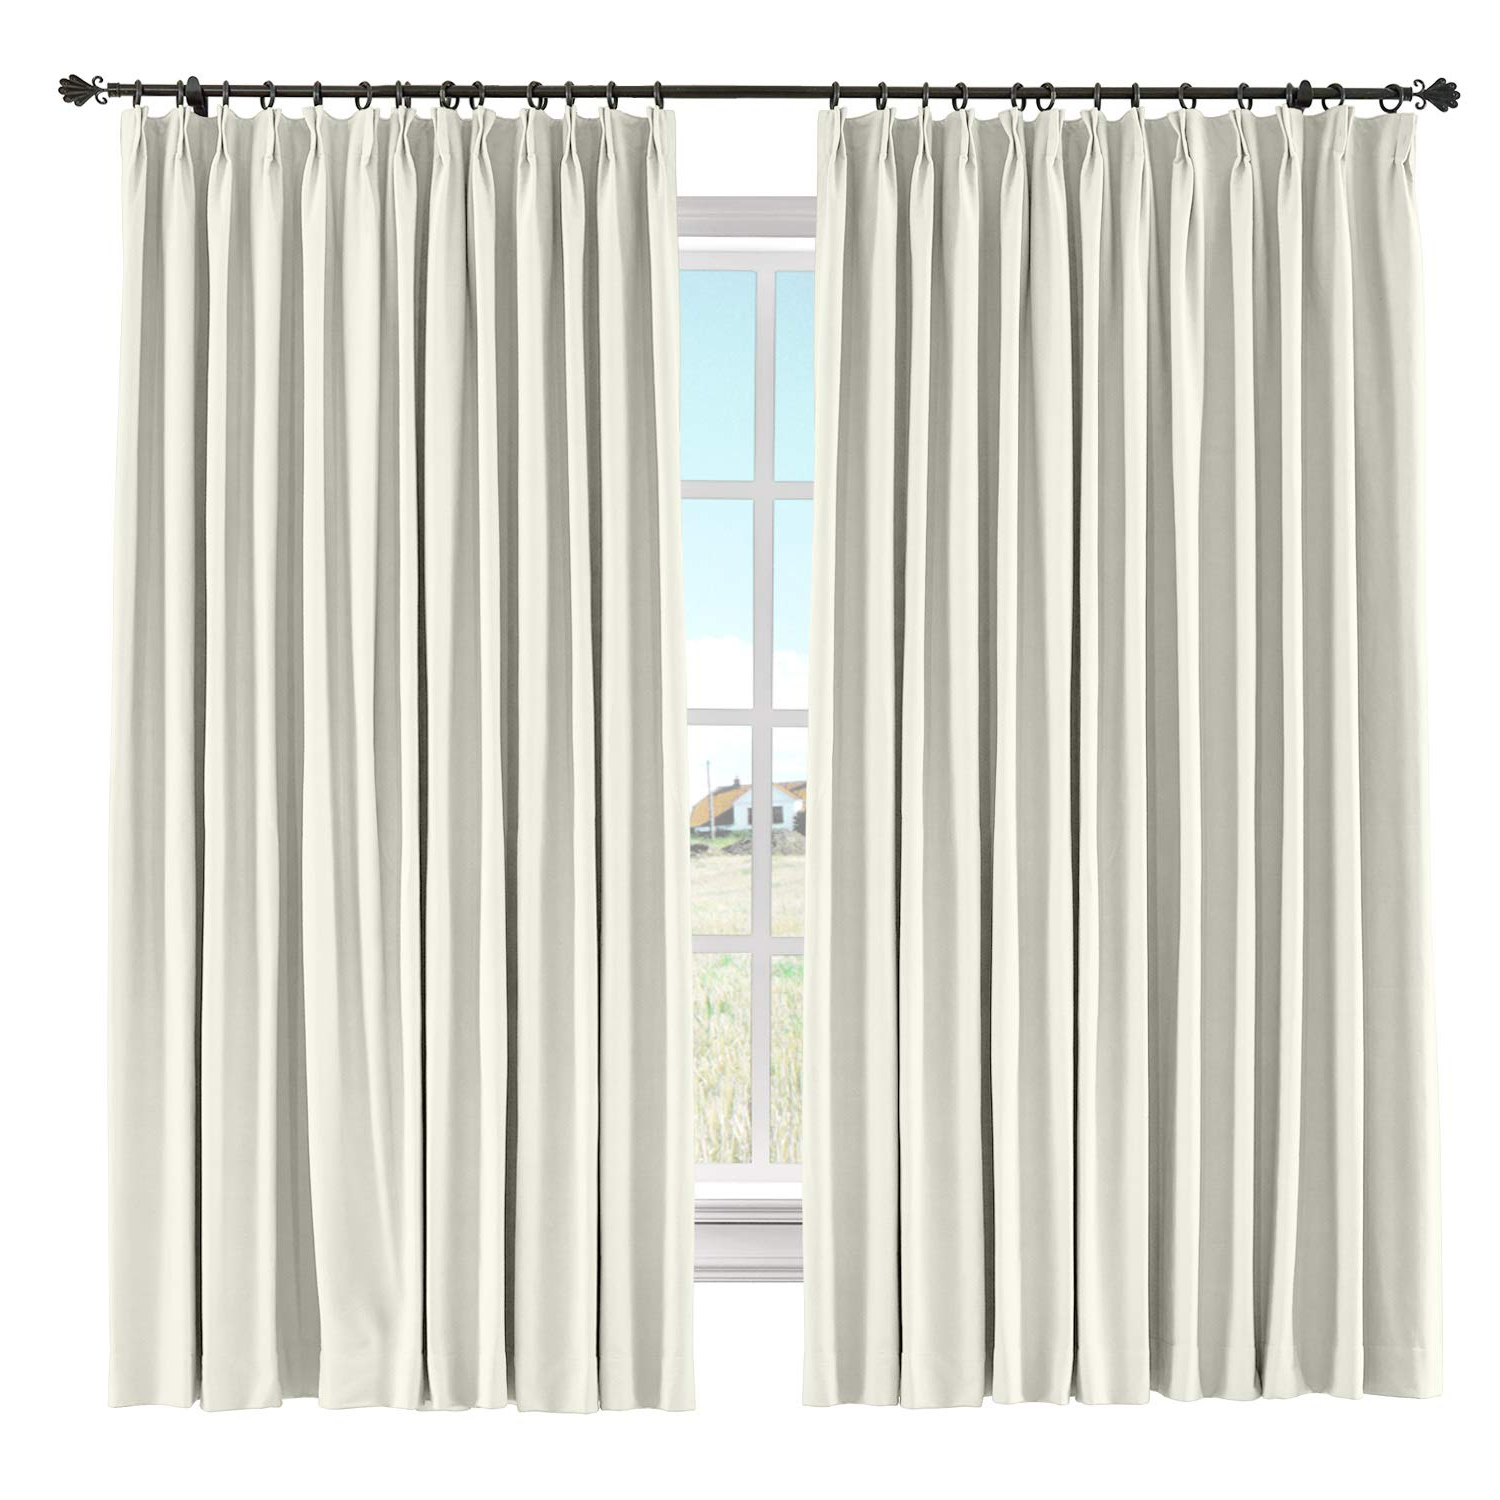 "Chadmade Light Blocking Curtain Panel Cotton Linen Drape Window Treatments  Curtain Solid Pinch Pleated Curtain Window Short Curtain, 60"" W X 108"" L Within Most Current Solid Cotton Pleated Curtains (View 5 of 20)"